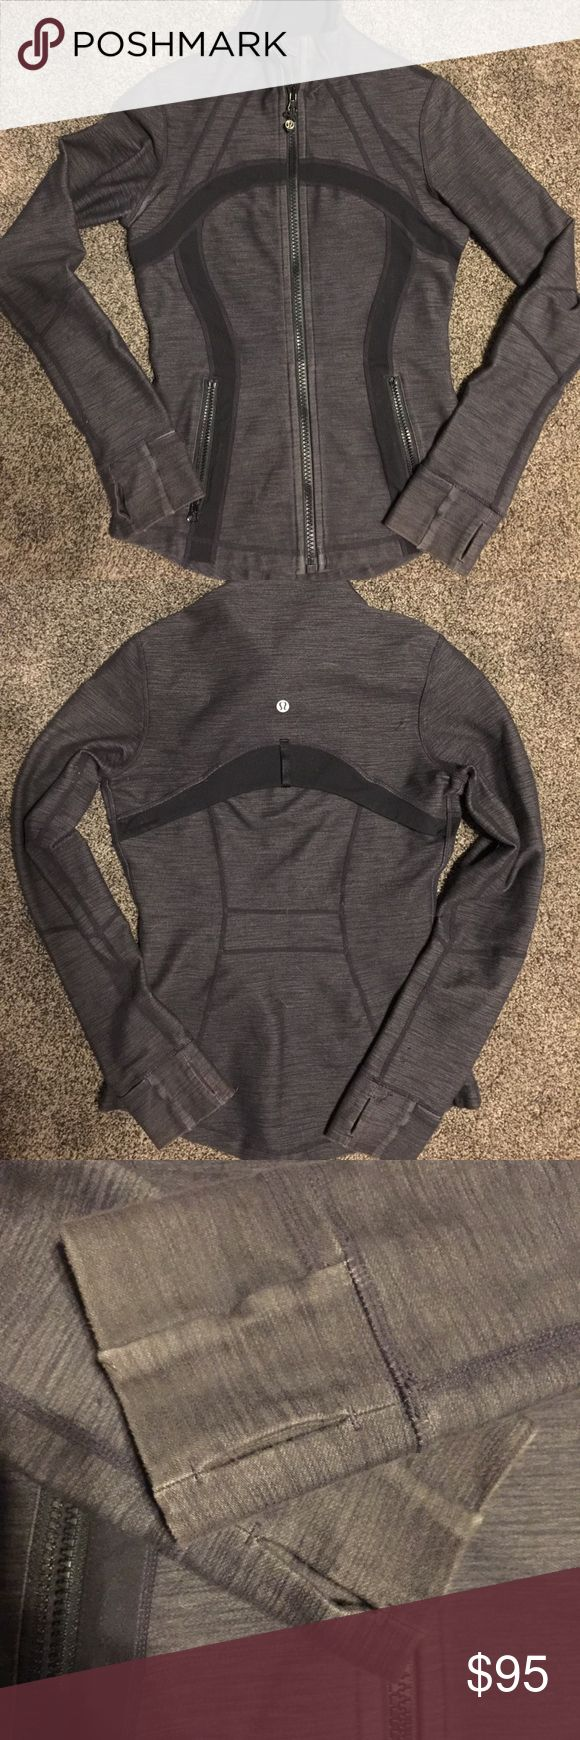 "Lululemon Define Jacket Heathered black/deep gray jacket from Lululemon. ""Define Jacket"" Size 4. Rare color. Thumb holes and fold over cuffs to keep hands warm. Shows a bit of wear on sleeves and has a pull on the arm, see photo.. lululemon athletica Jackets & Coats"